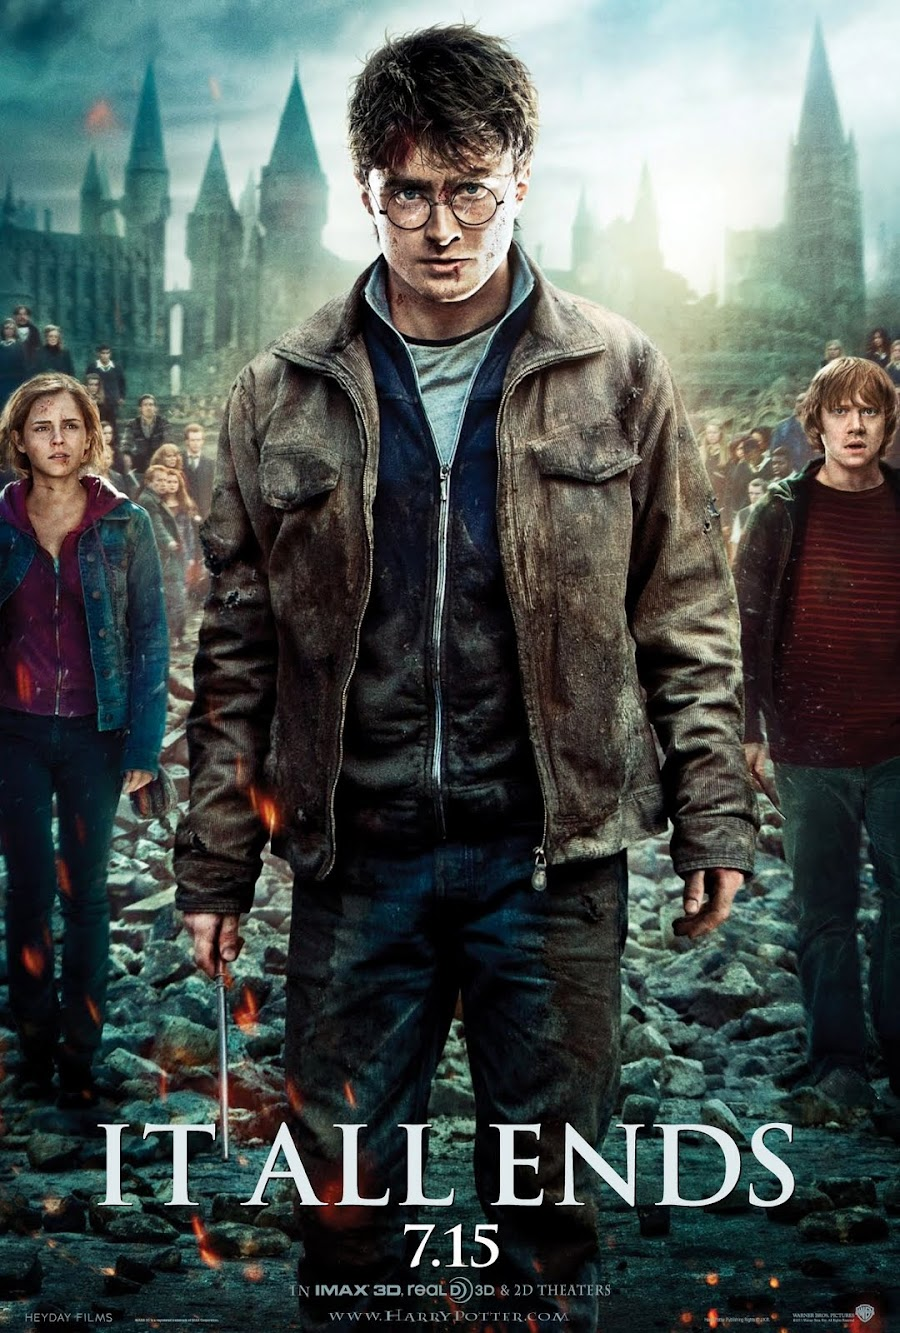 Harry Potter & The Deathly Hallows, Pt. 2